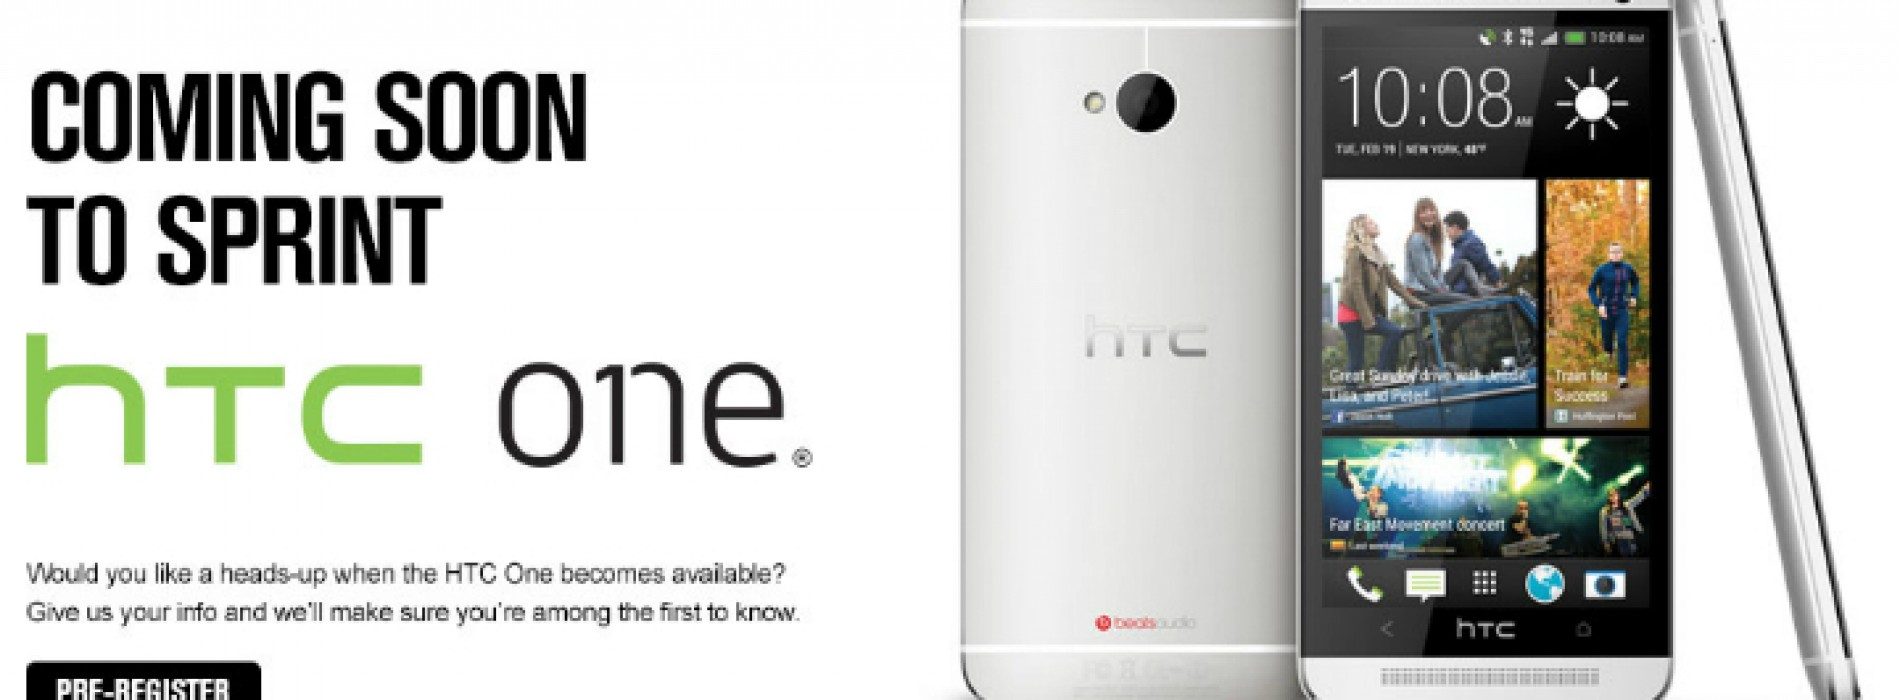 Sprint taps $199 HTC One with April 19 debut